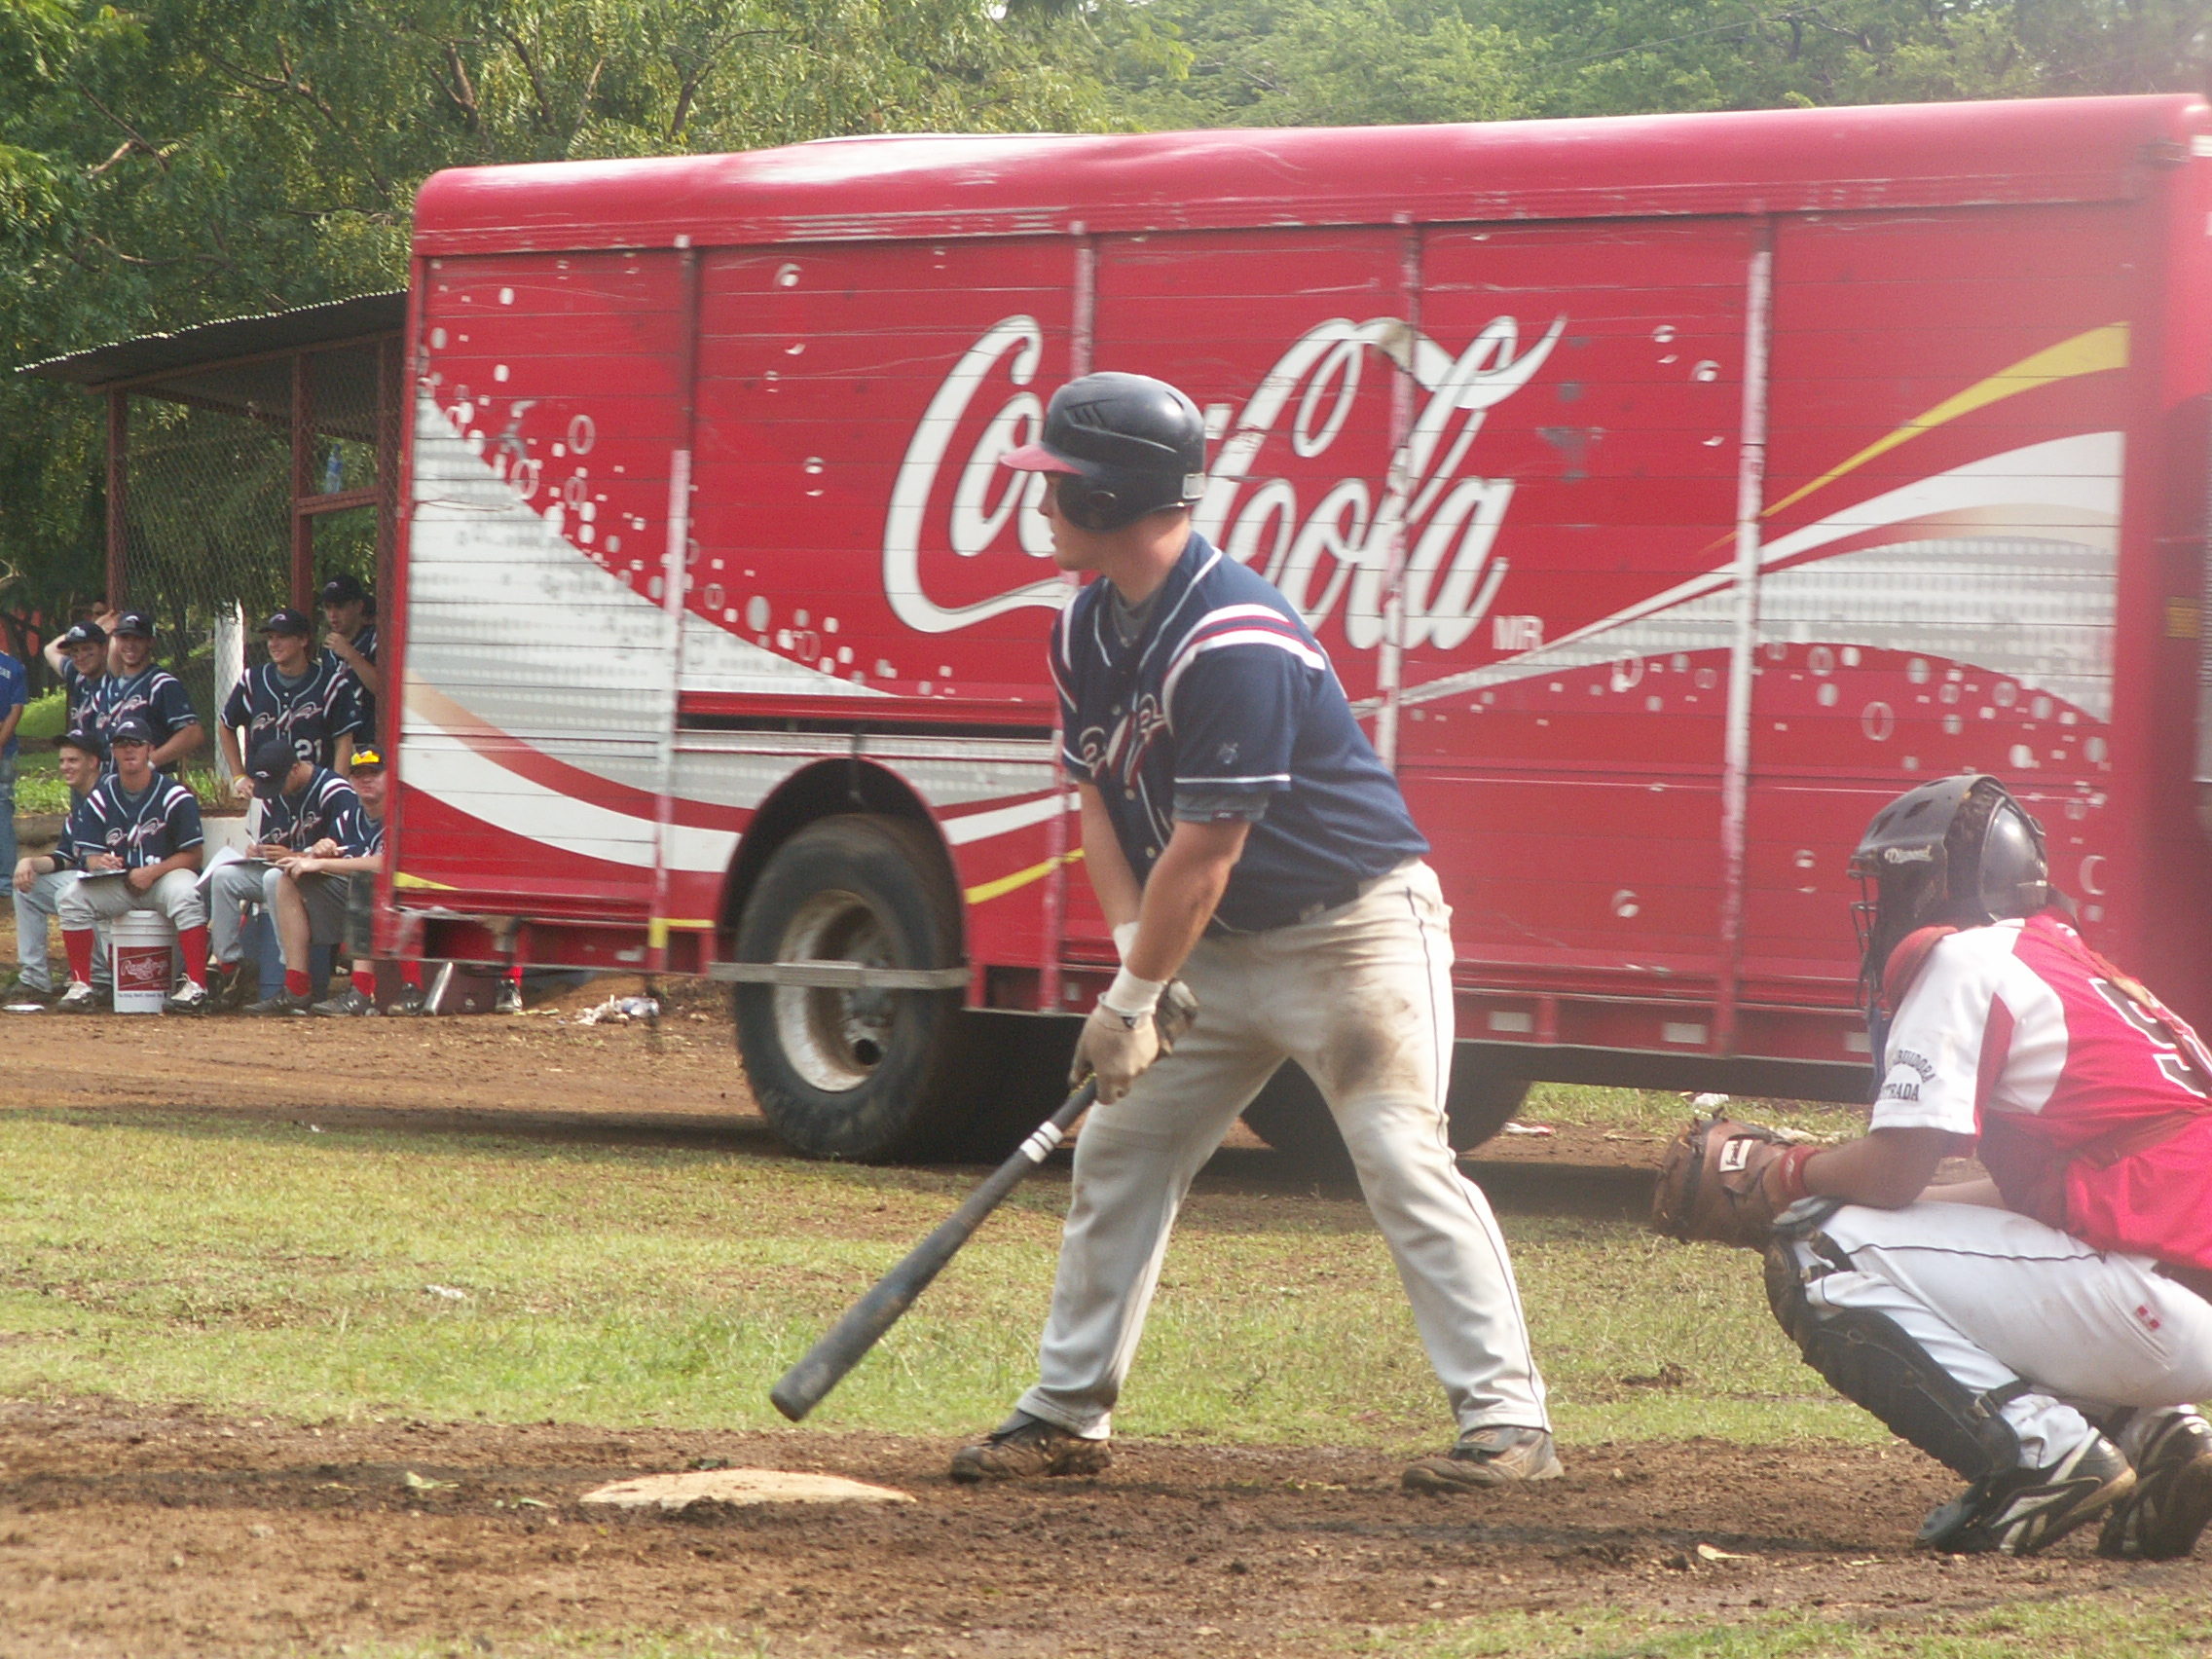 AIA Nicaragua Baseball player Ty Shaw is at bat.  Please nottice the CocaCola Truck driving in between him and our dug out during the game.  This and many other surprises magically appear during the games ! lol